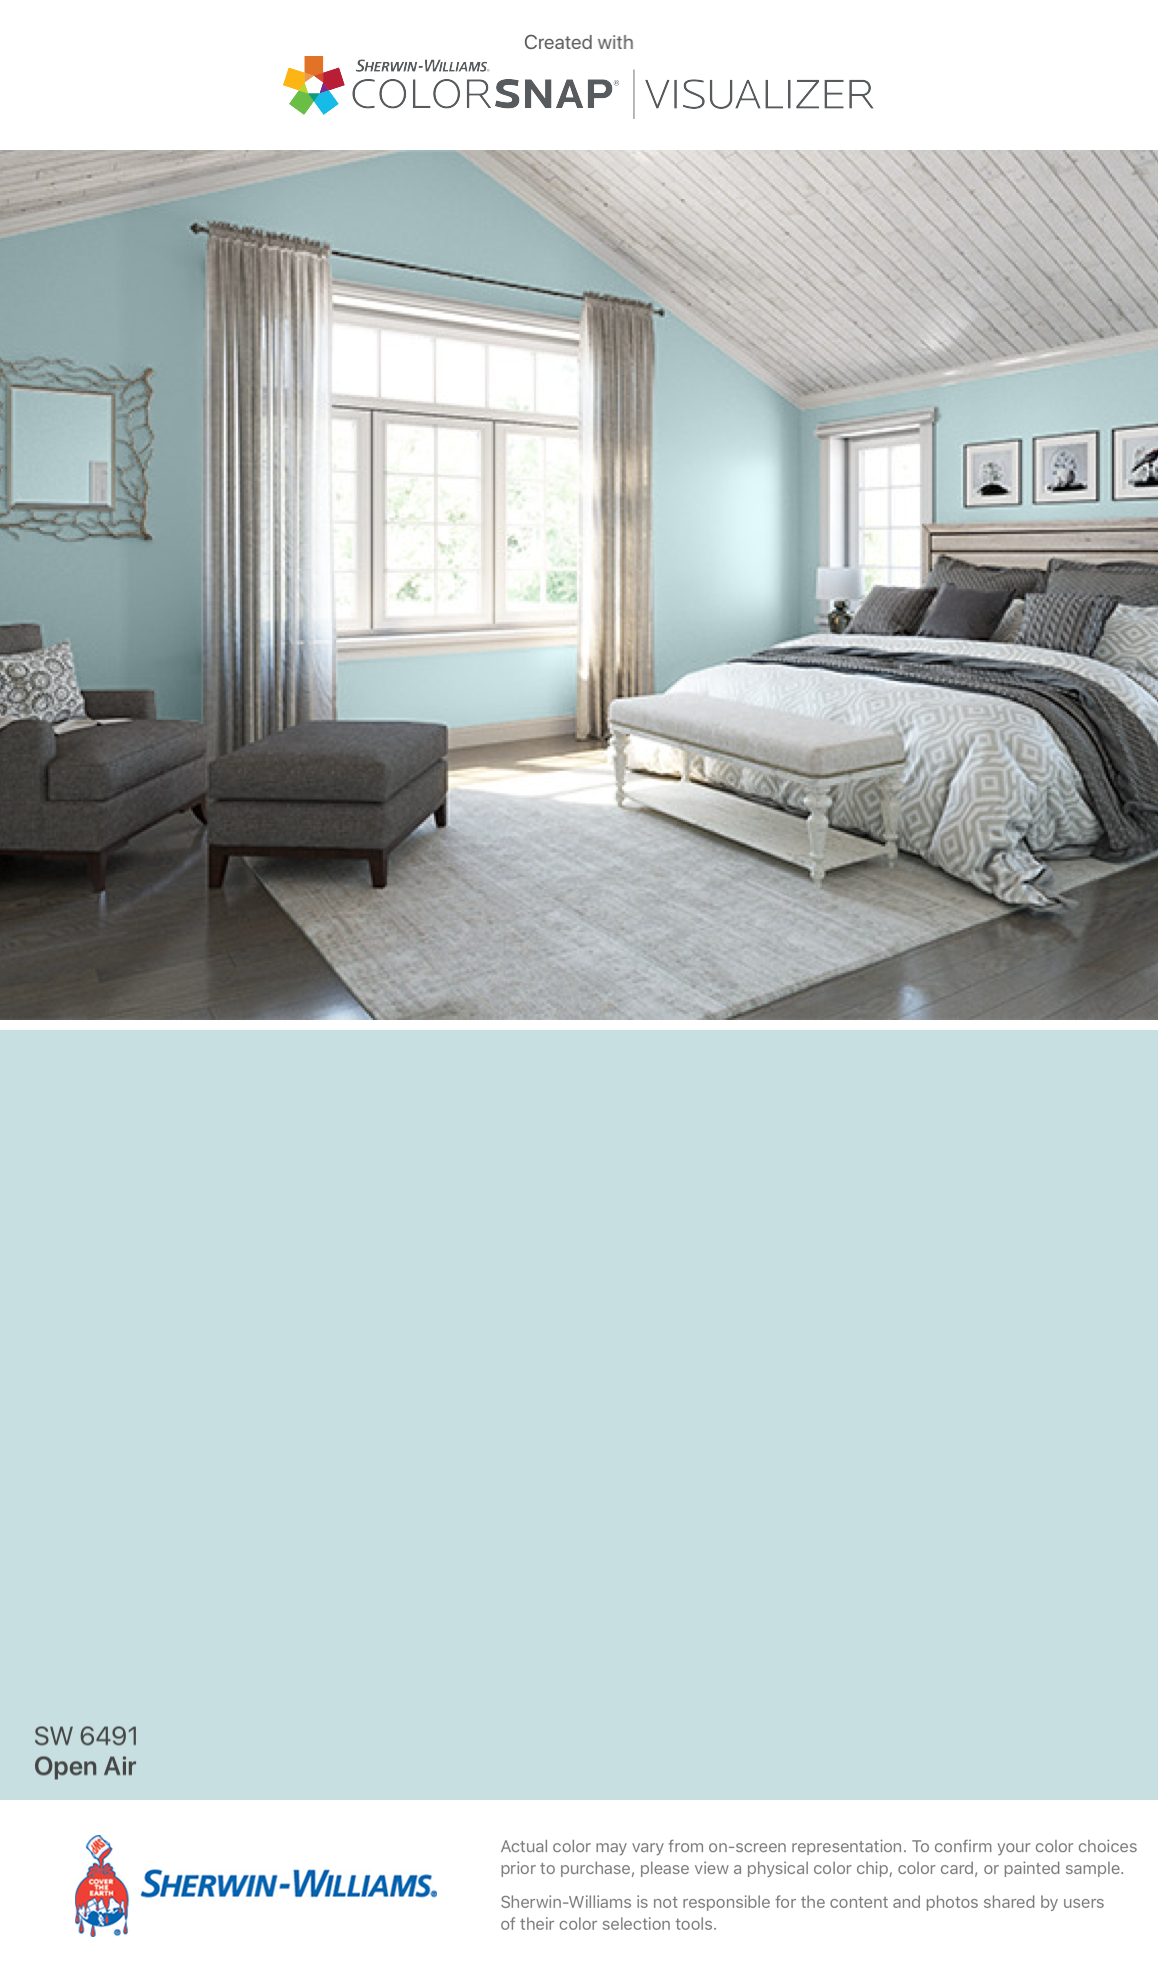 I Found This Color With Colorsnap Visualizer For Iphone By Sherwin Williams Open Air Sw 6491 Bedroom Colors Master Bedroom Paint Bedroom Paint Colors